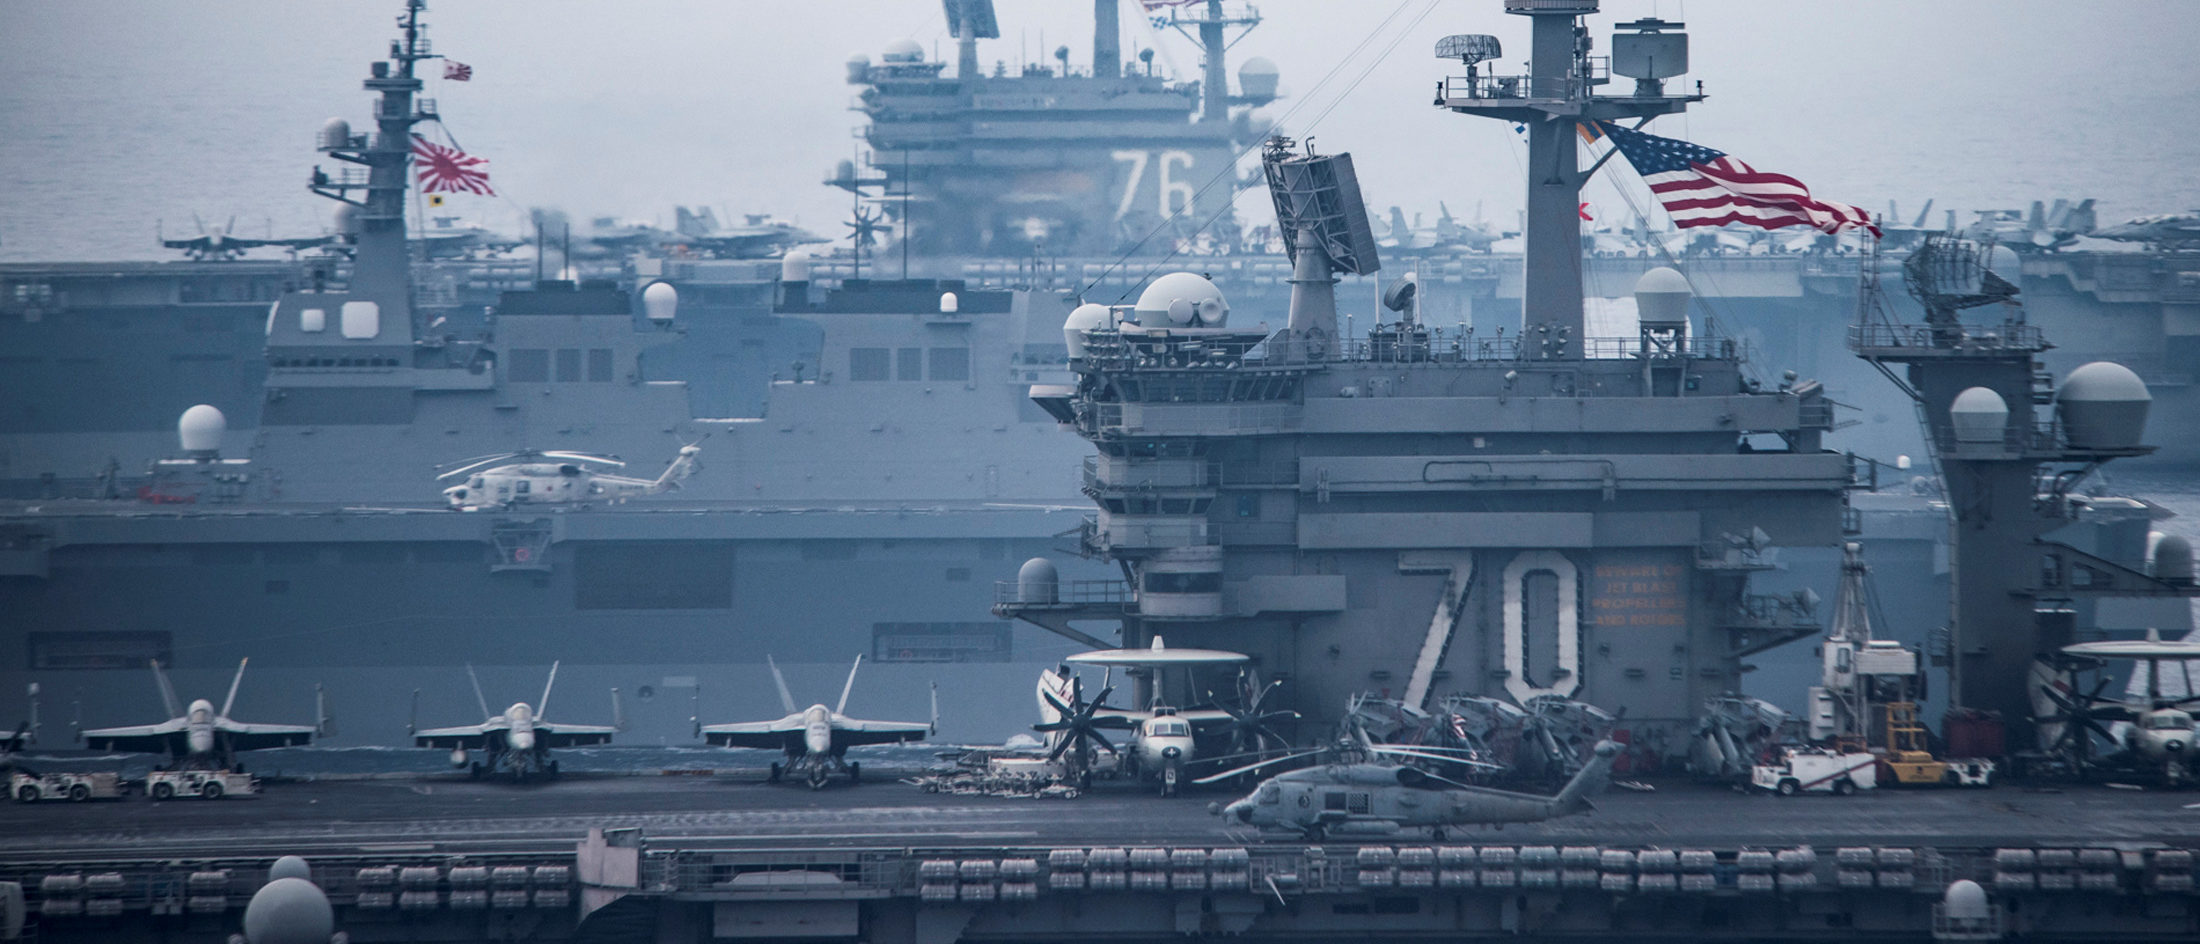 U.S. Navy aircraft carriers USS Carl Vinson (R) and USS Ronald Reagan sail with their strike groups and Japanese naval ships during training in the Sea of Japan, June 1, 2017. U.S. Navy/Mass Communication Specialist 2nd Class Z.A. Landers/Handout via REUTERS